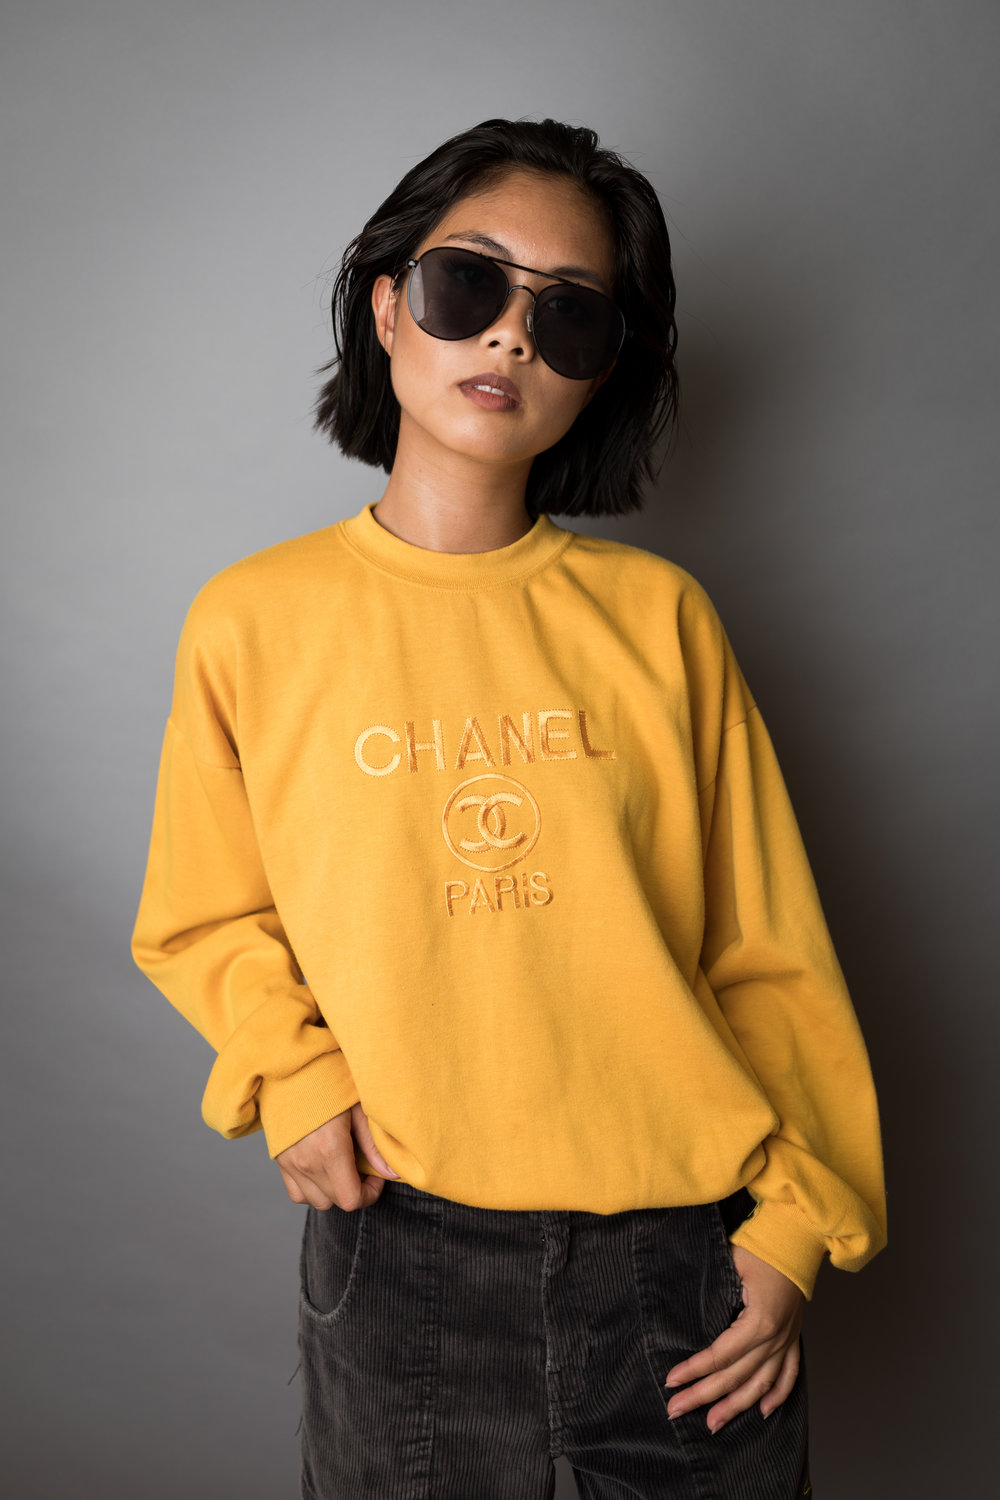 I never knew Chanel had sweaters and this one is so comfy! And these corduroy shorts are loose at the legs and fit perfectly at my waist.